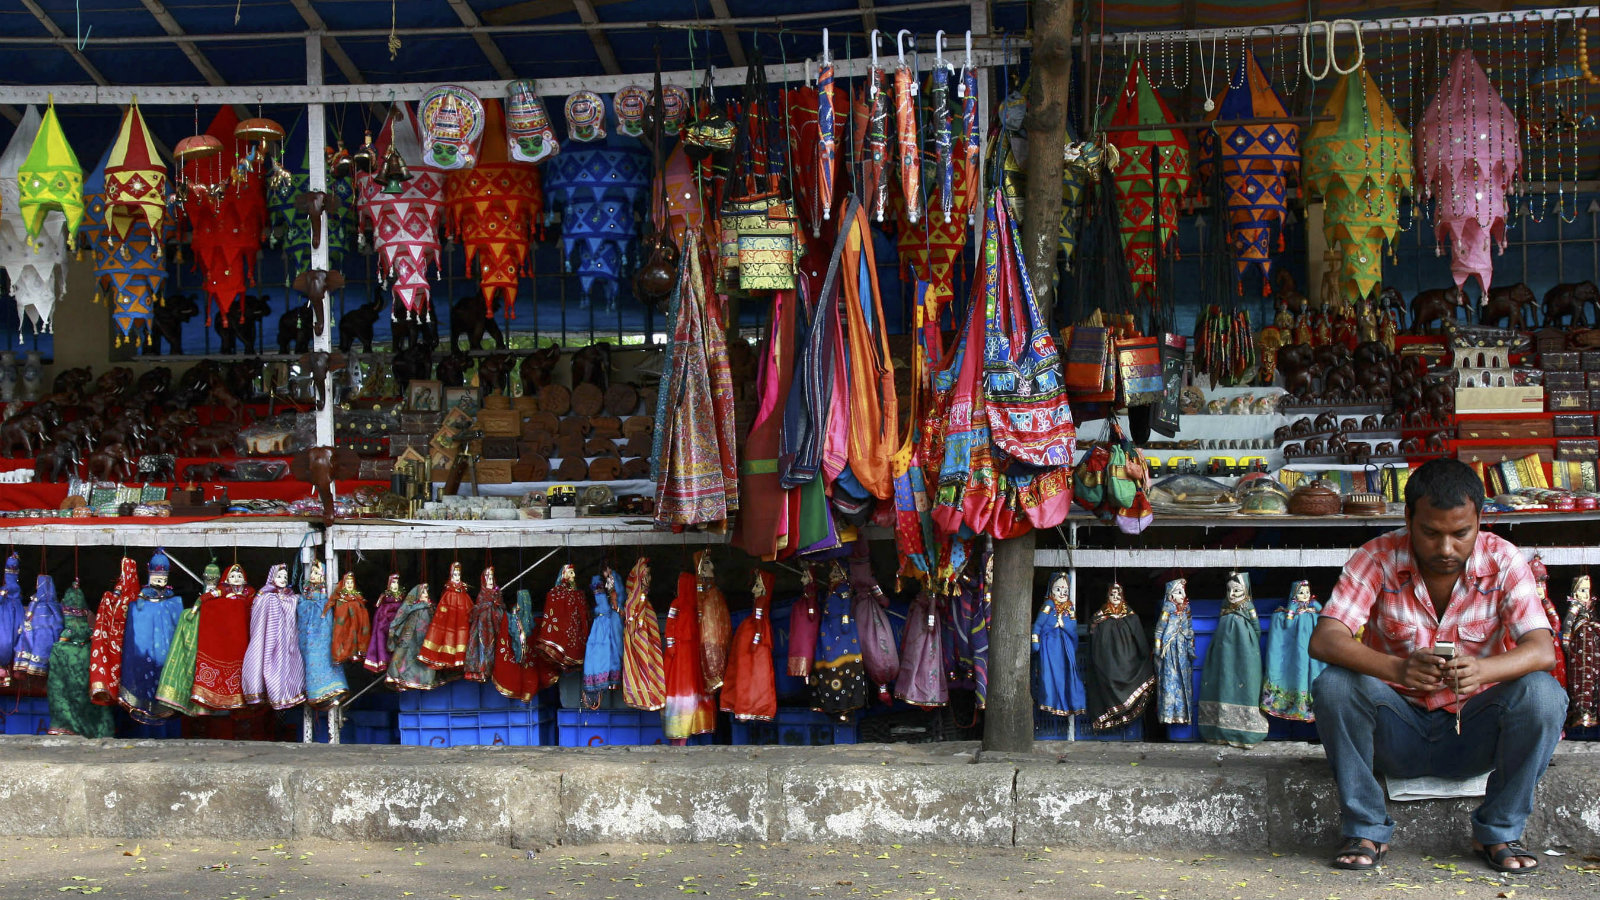 A vendor waits for customers at his roadside handicrafts shop in the southern Indian city of Cochin December 19, 2008. Tourist arrivals in India are set to fall by up to 15 percent this season after Islamist militants went on a three-day rampage in Mumbai, tour operators said on Monday.